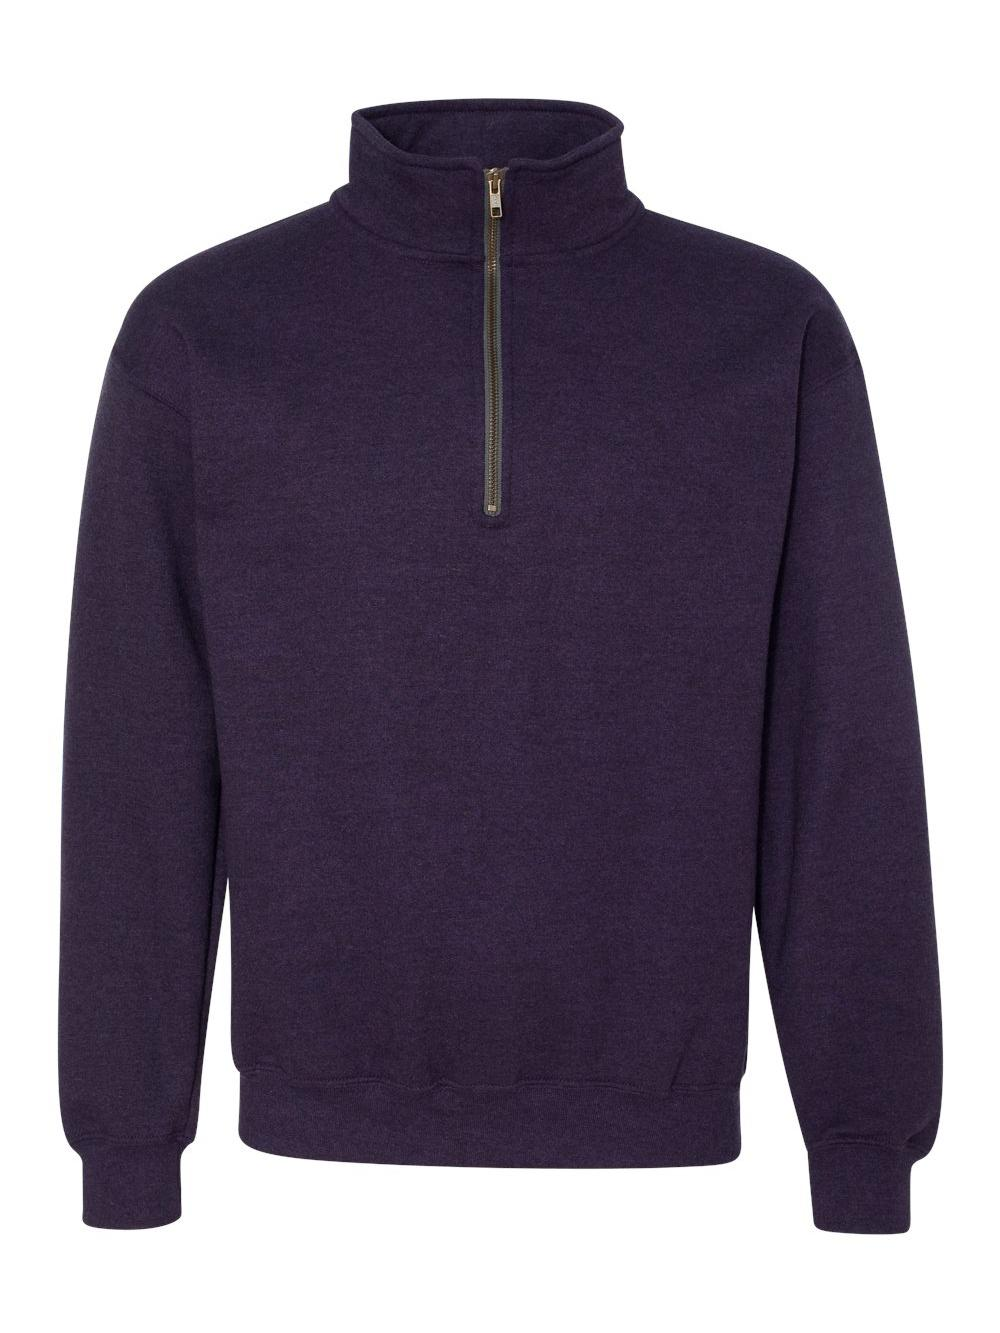 Gildan-Heavy-Blend-Quarter-Zip-Cadet-Collar-Sweatshirt-18800 thumbnail 6